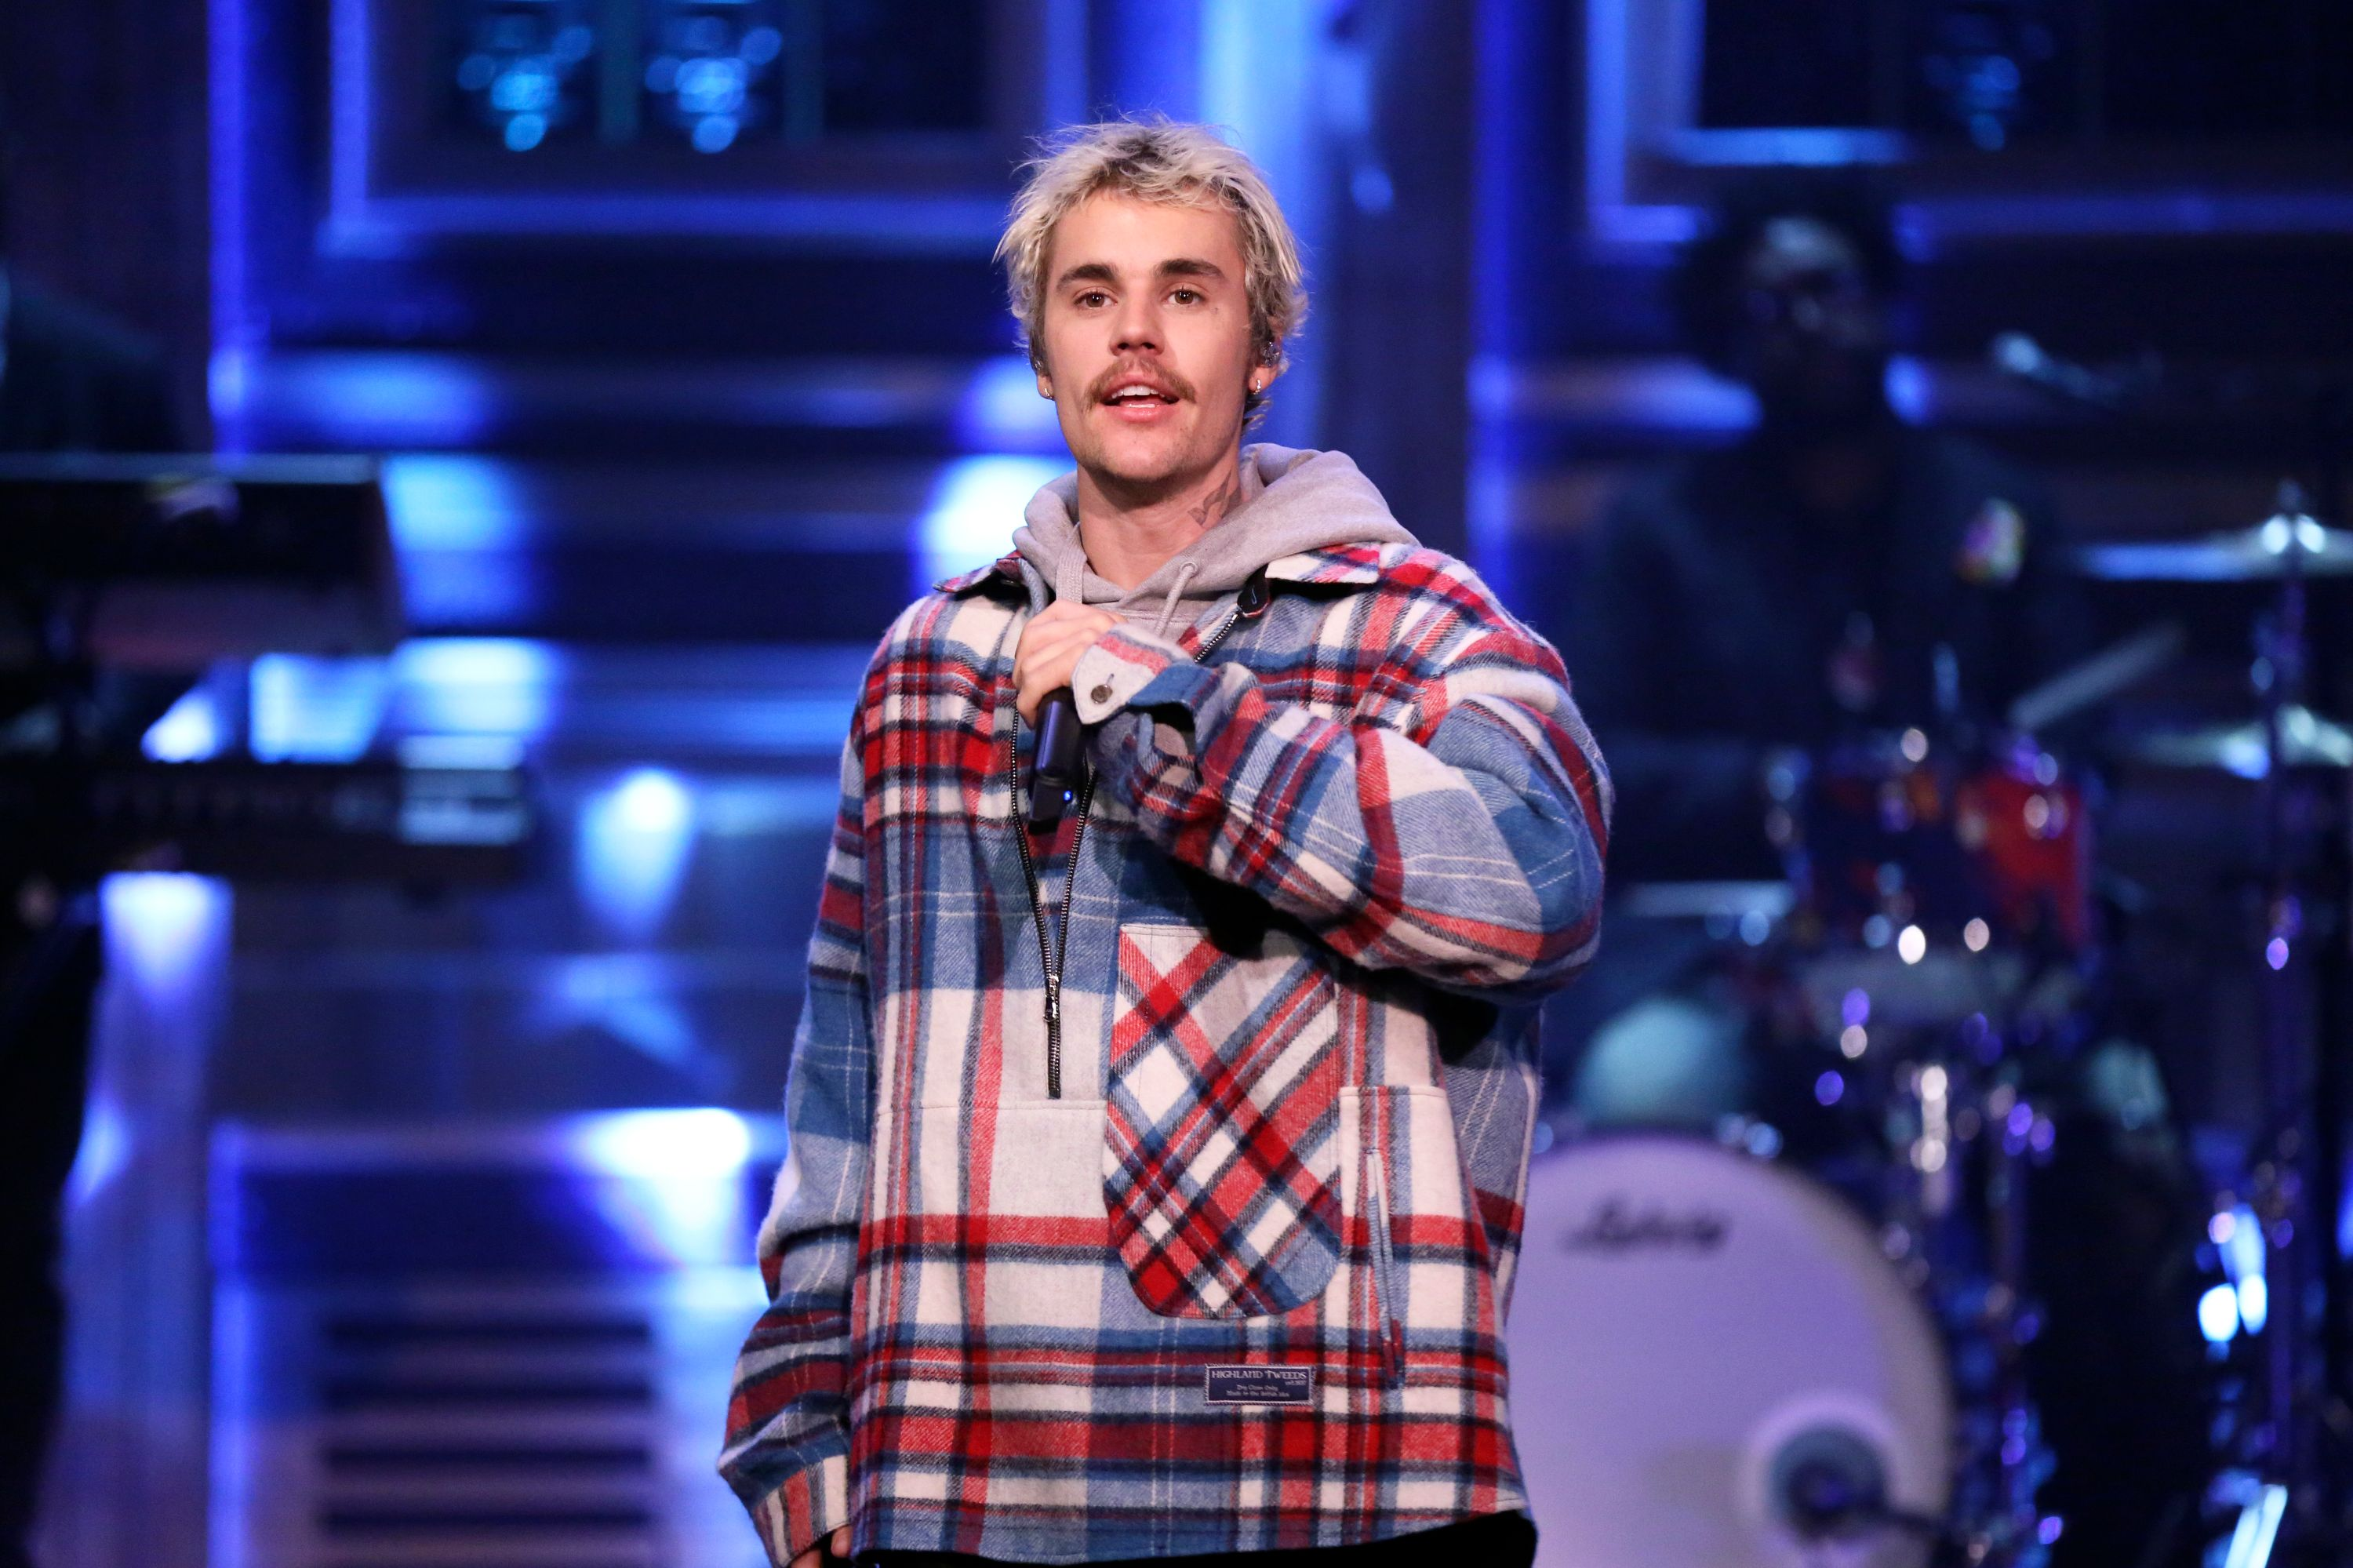 """Justin Bieber performs on """"THE TONIGHT SHOW STARRING JIMMY FALLON """" on February 14, 2020 